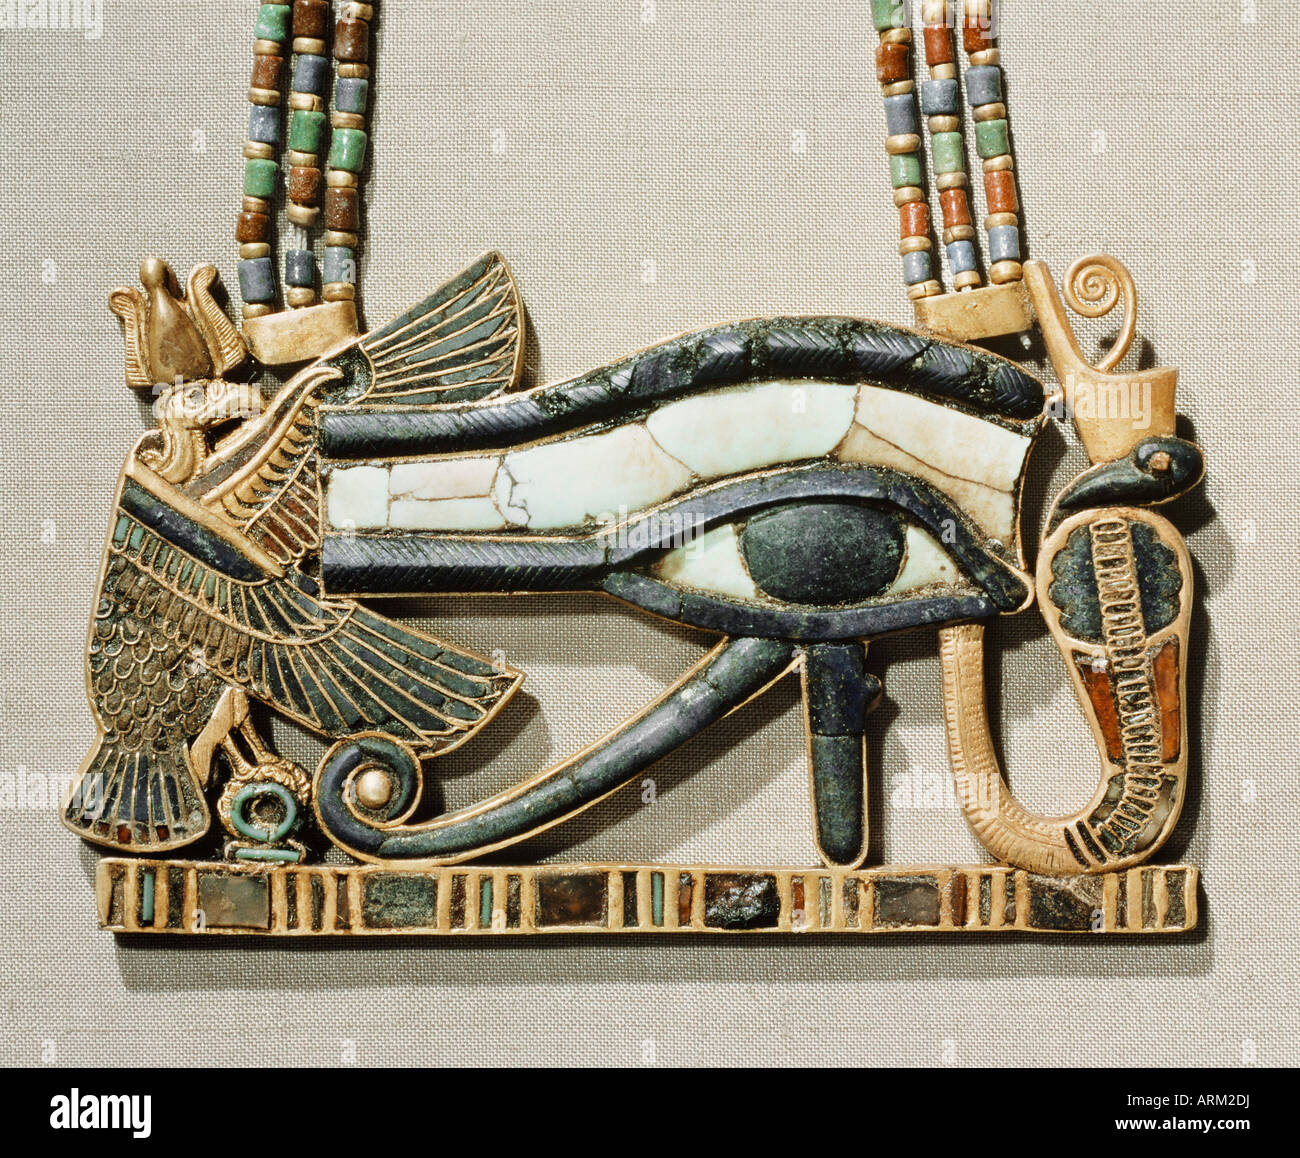 Pectoral of the sacred eye, from the tomb of the pharaoh Tutankhamun - Stock Image